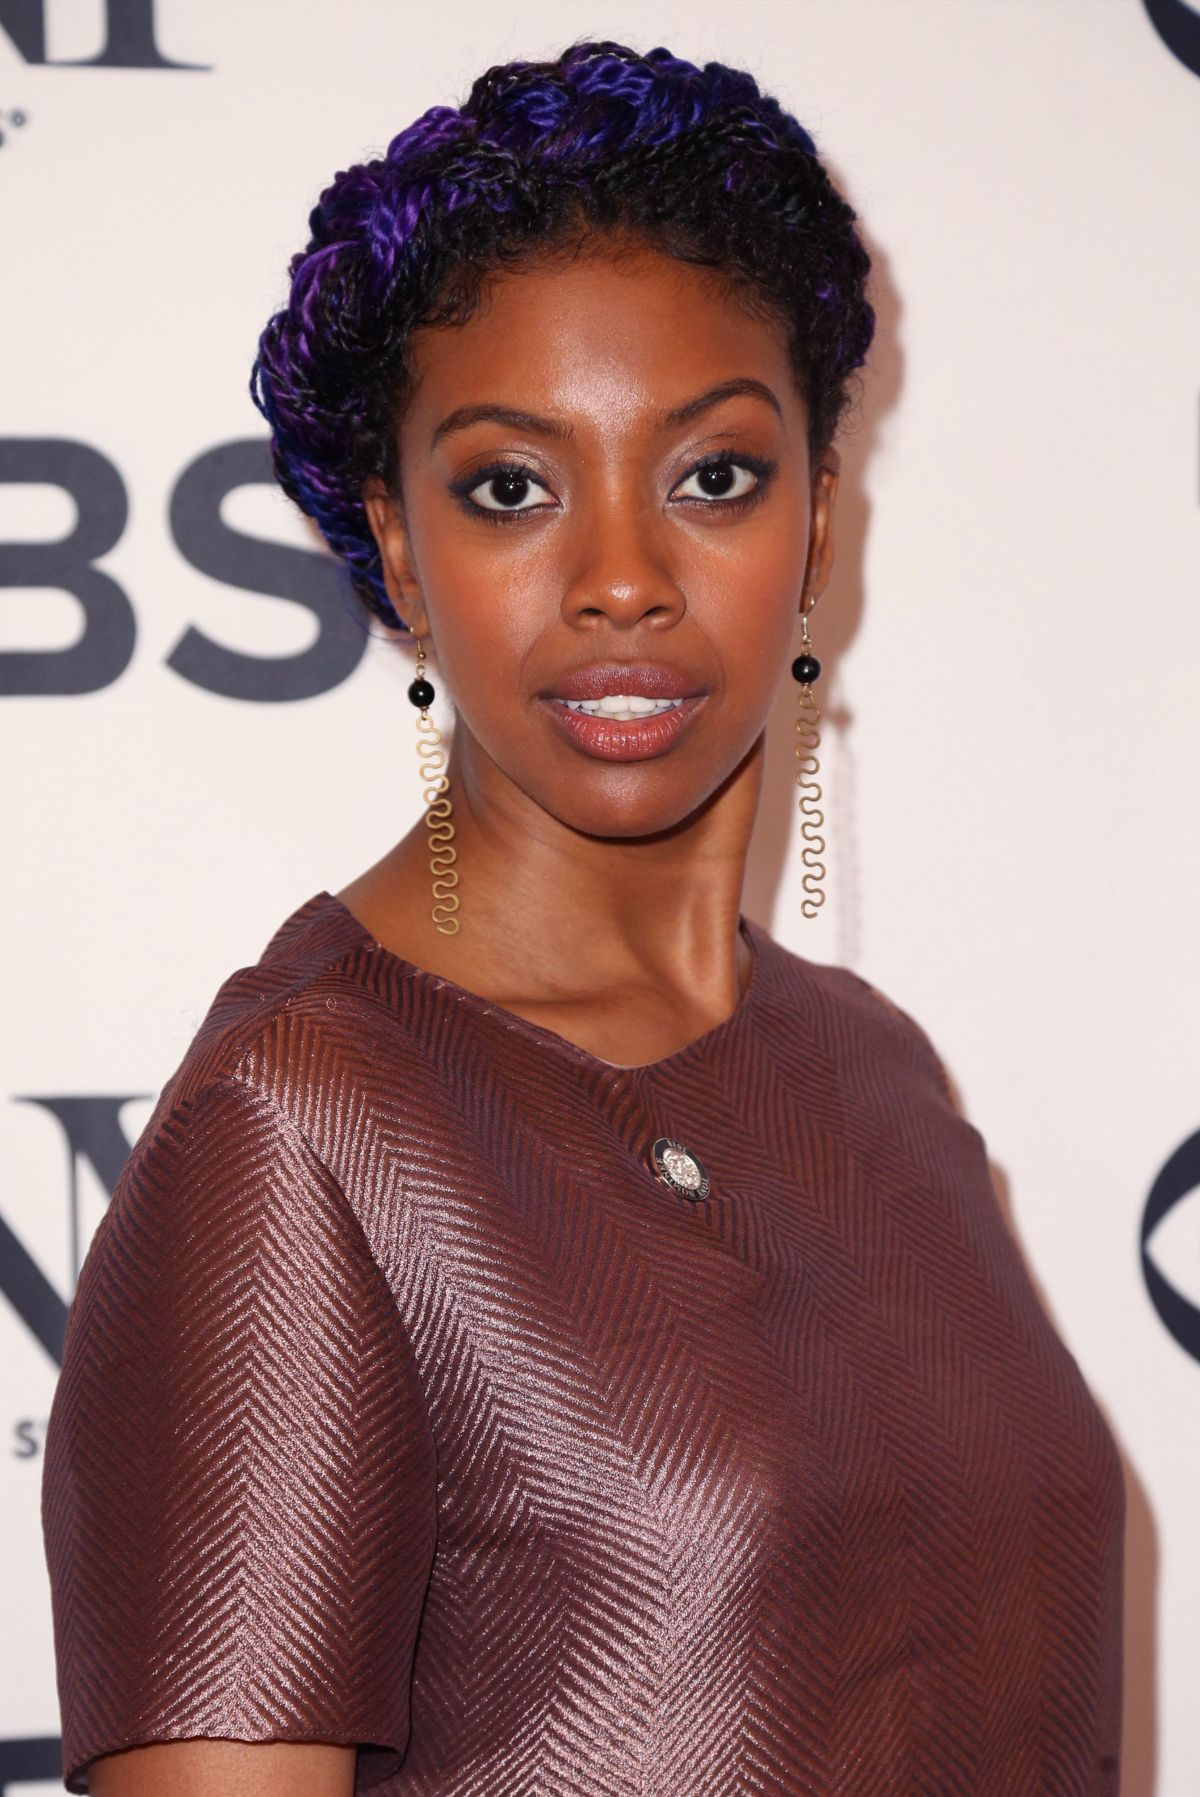 Condola Rashad nudes (97 foto and video), Pussy, Hot, Instagram, panties 2006